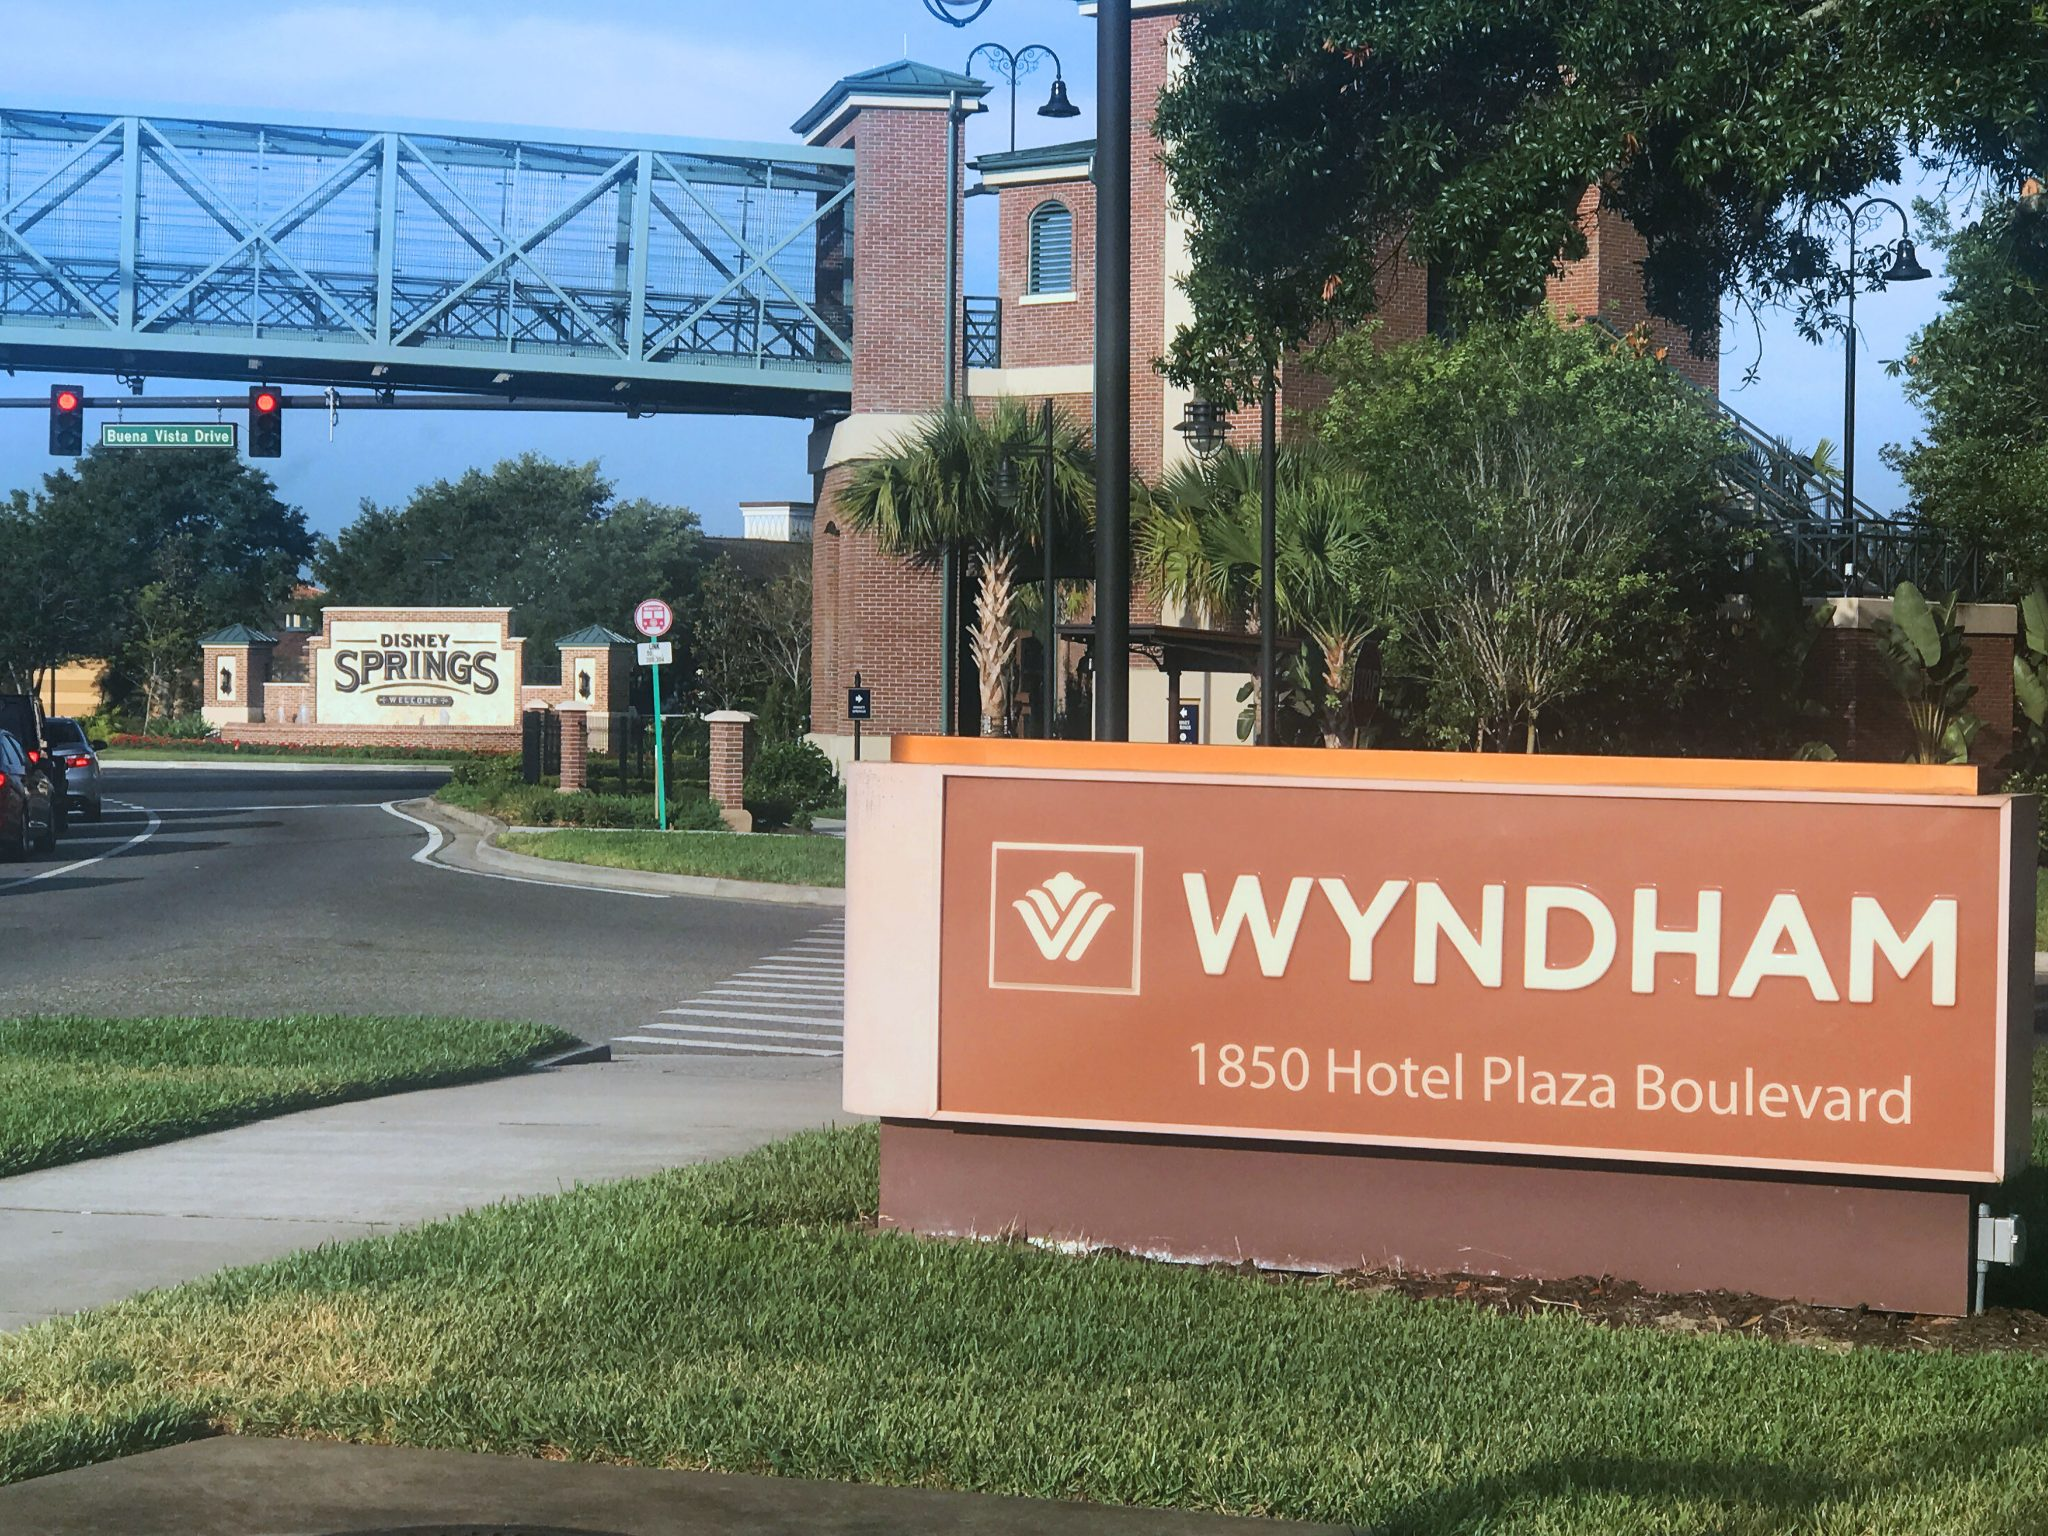 5 Reasons To Stay At Wyndham Lake Buena Vista Sarah In The Suburbs